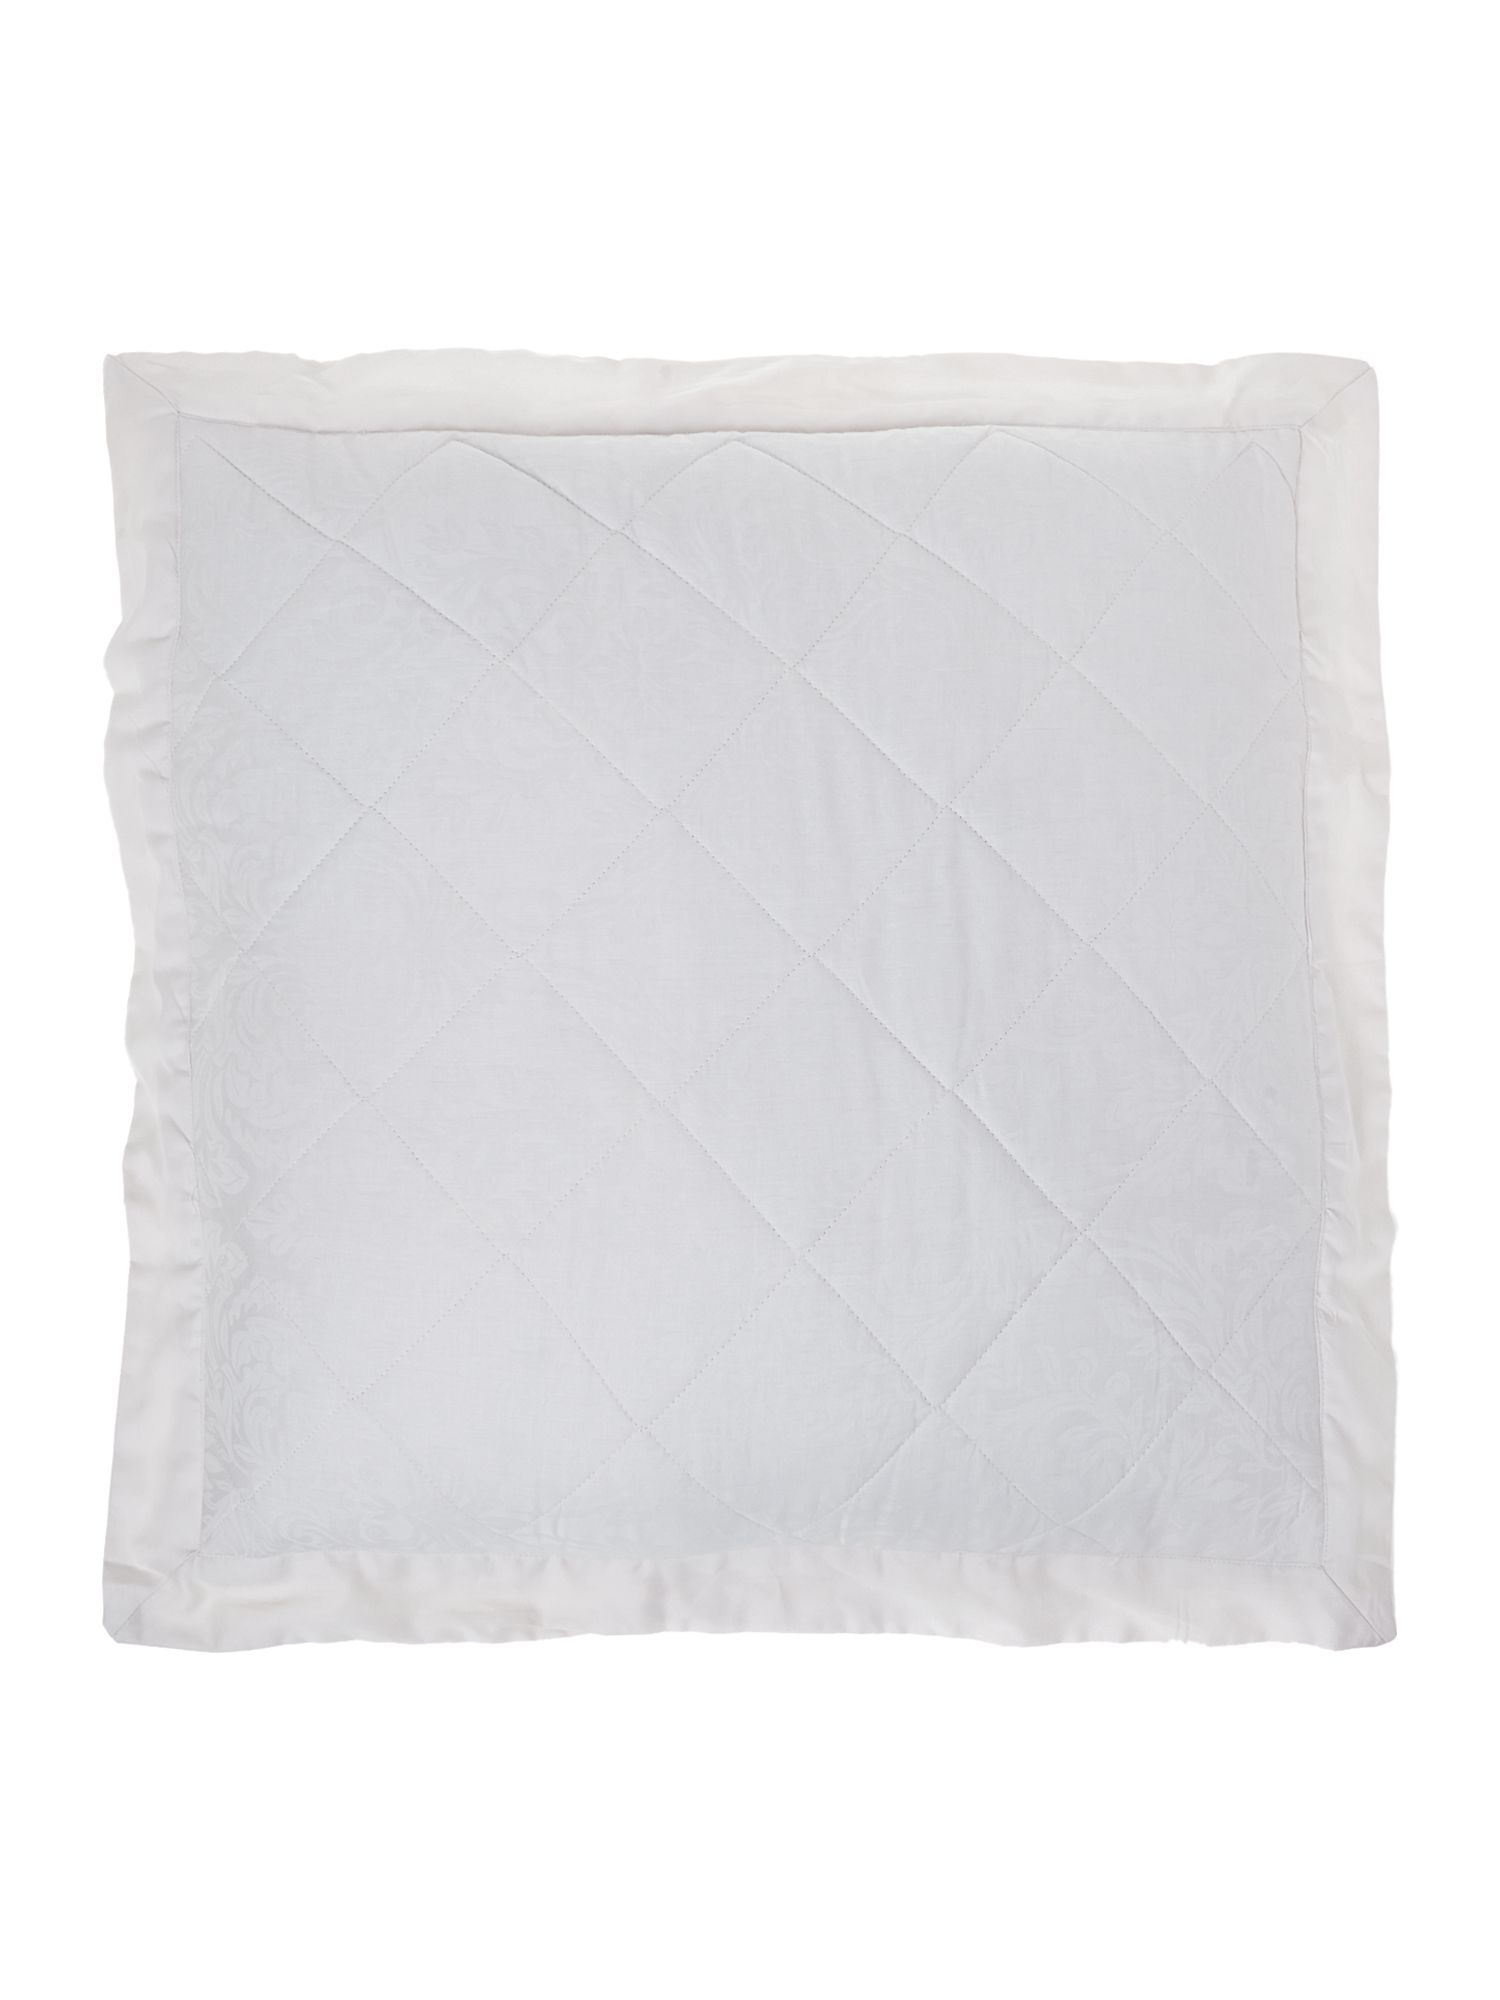 Lhc damask euro pillow sham cream